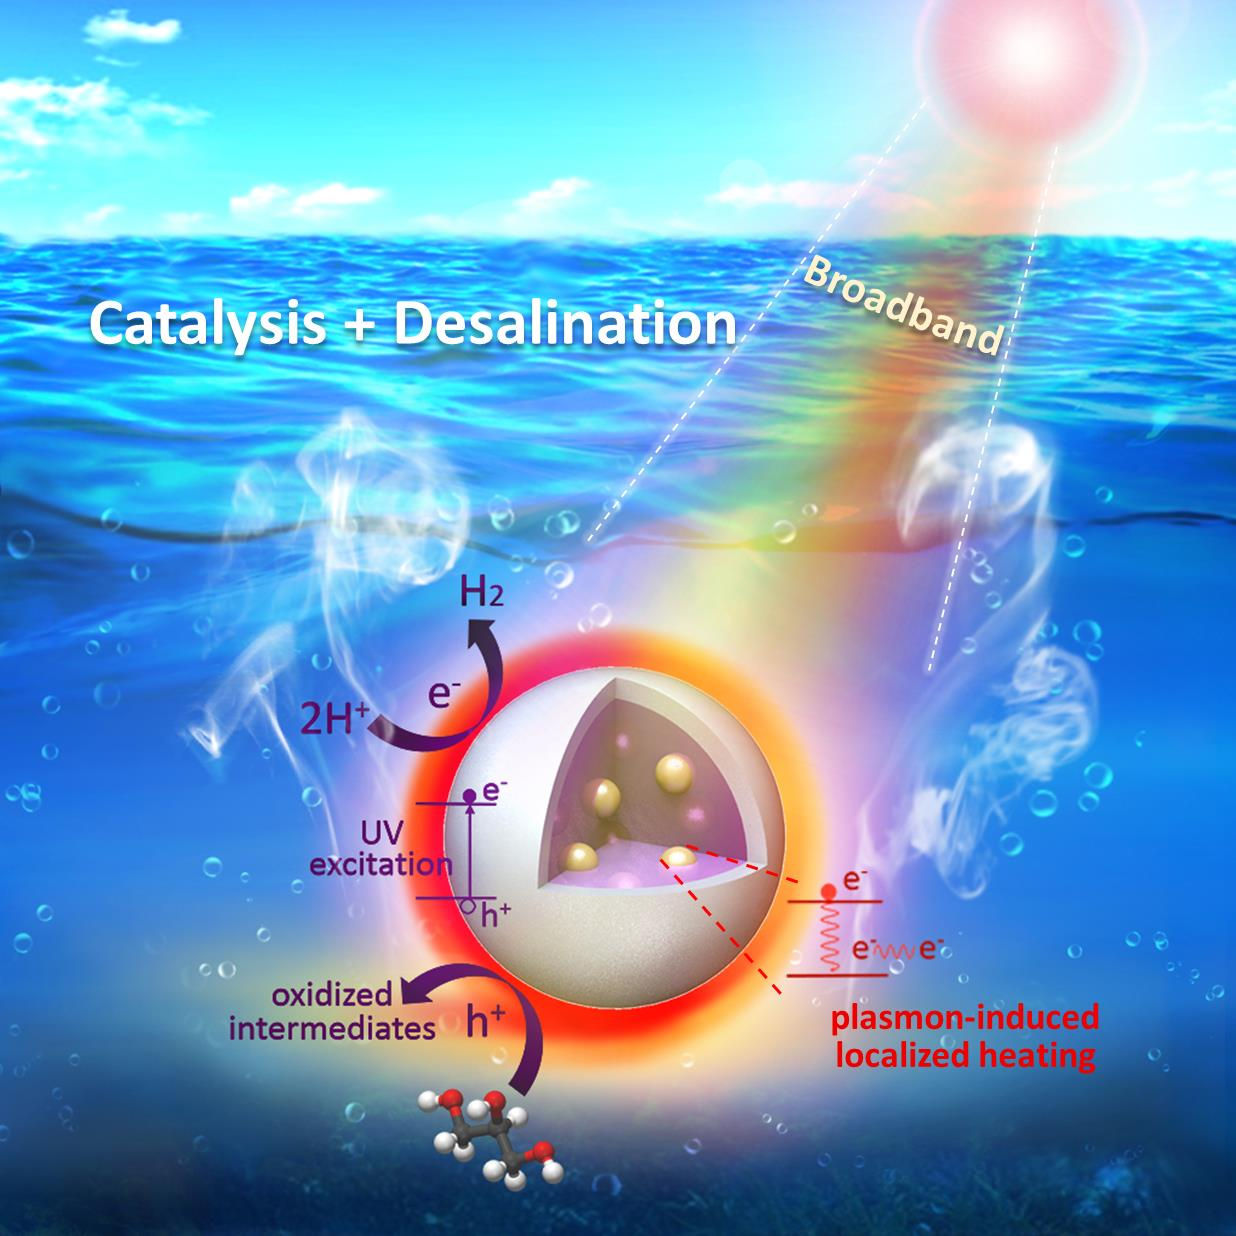 Plasmonic Photothermic Directed Broadband Sunlight Harnessing for Seawater Catalysis and Desalination